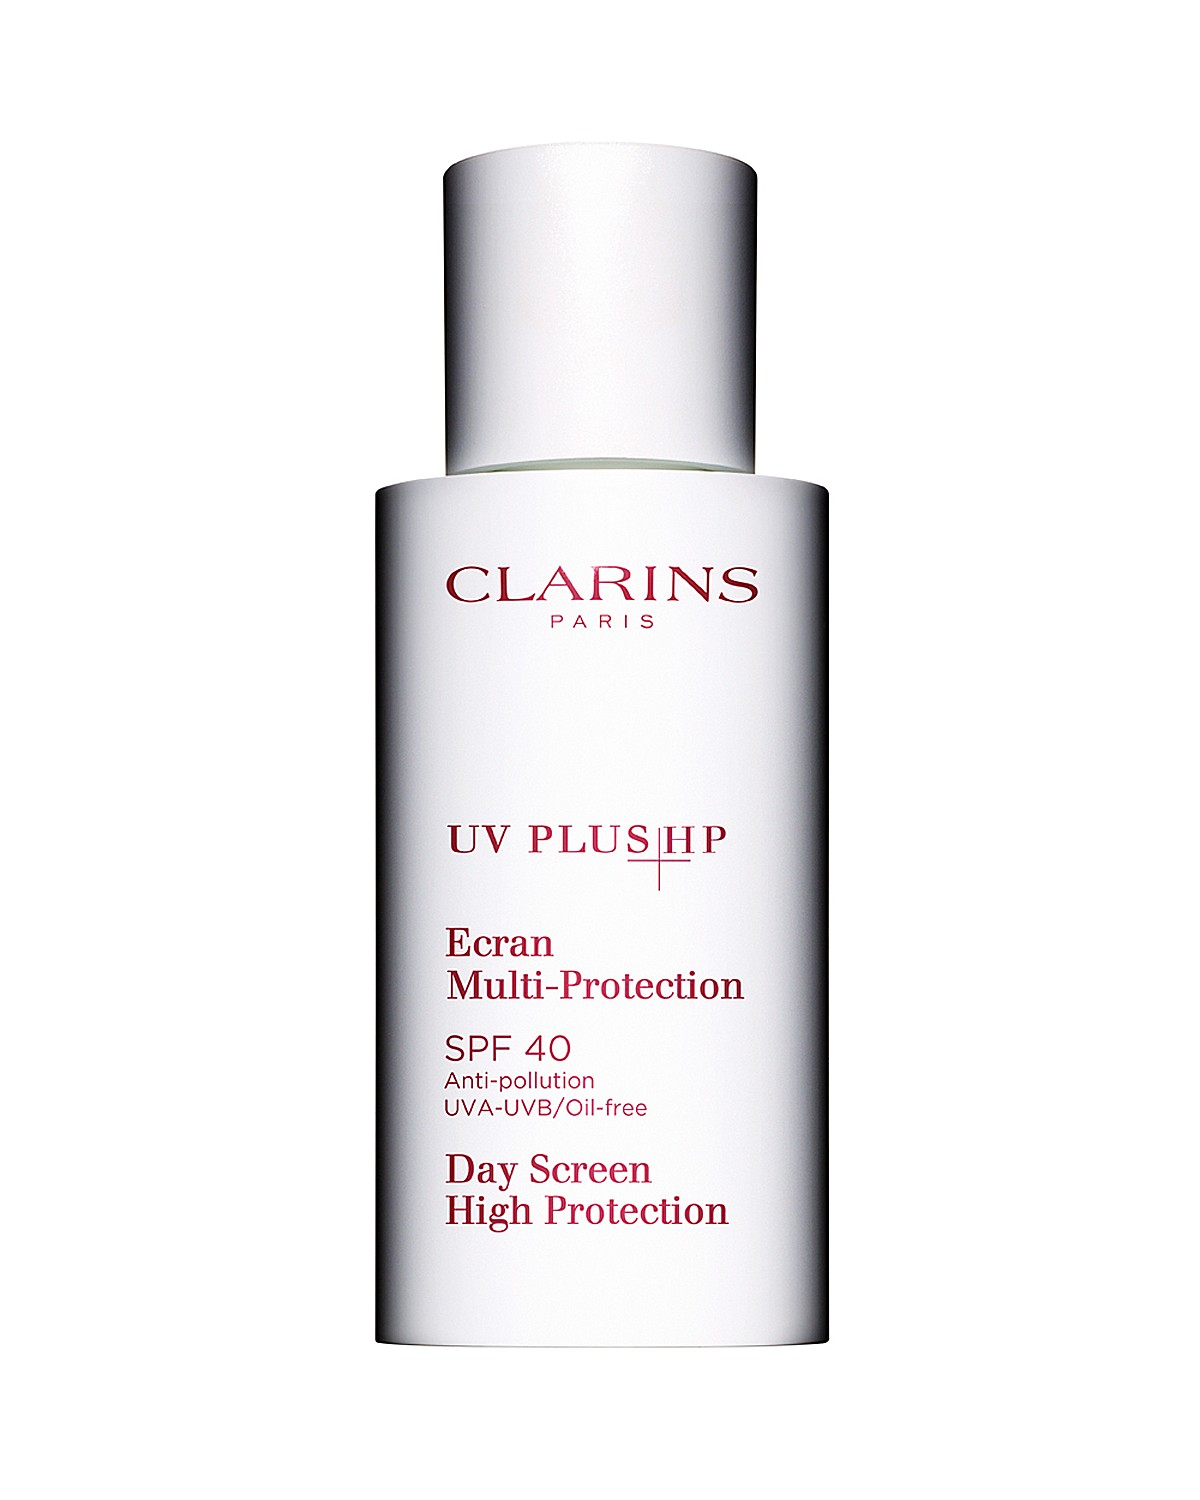 Clarins UV Plus